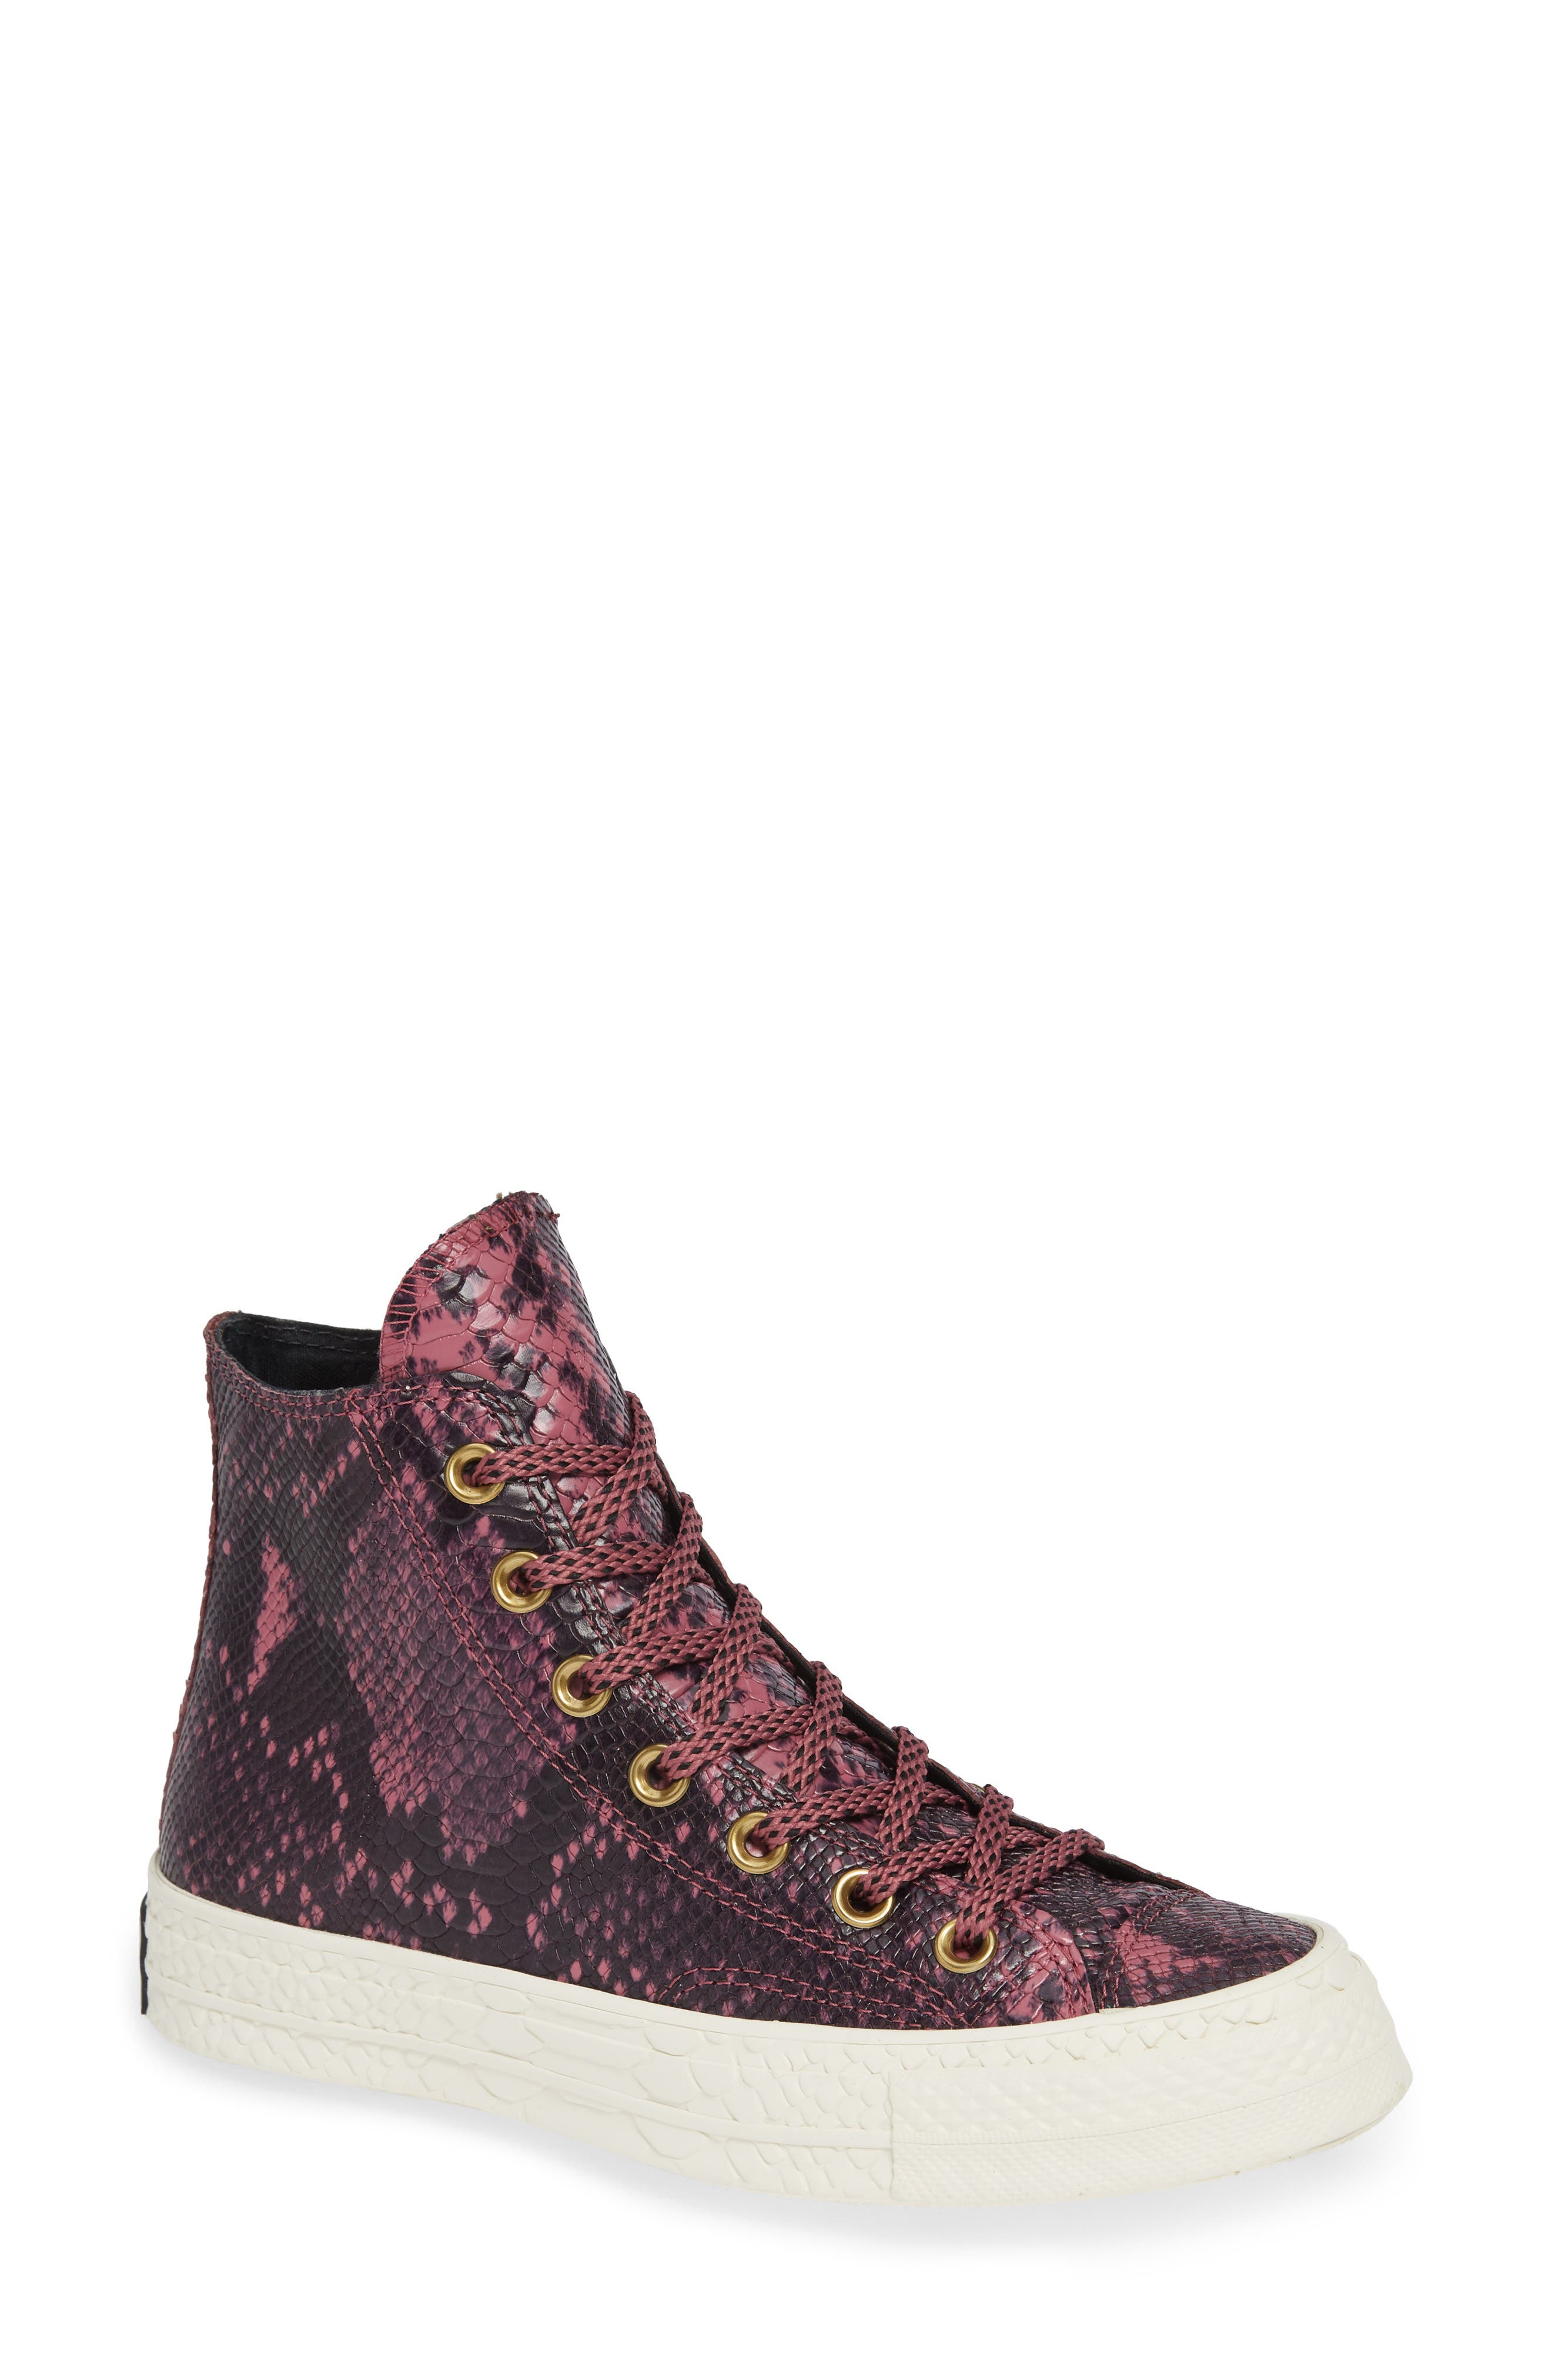 Chuck Taylor<sup>®</sup> All Star<sup>®</sup> CT 70 Reptile High Top Sneaker,                         Main,                         color, VINTAGE WINE LEATHER